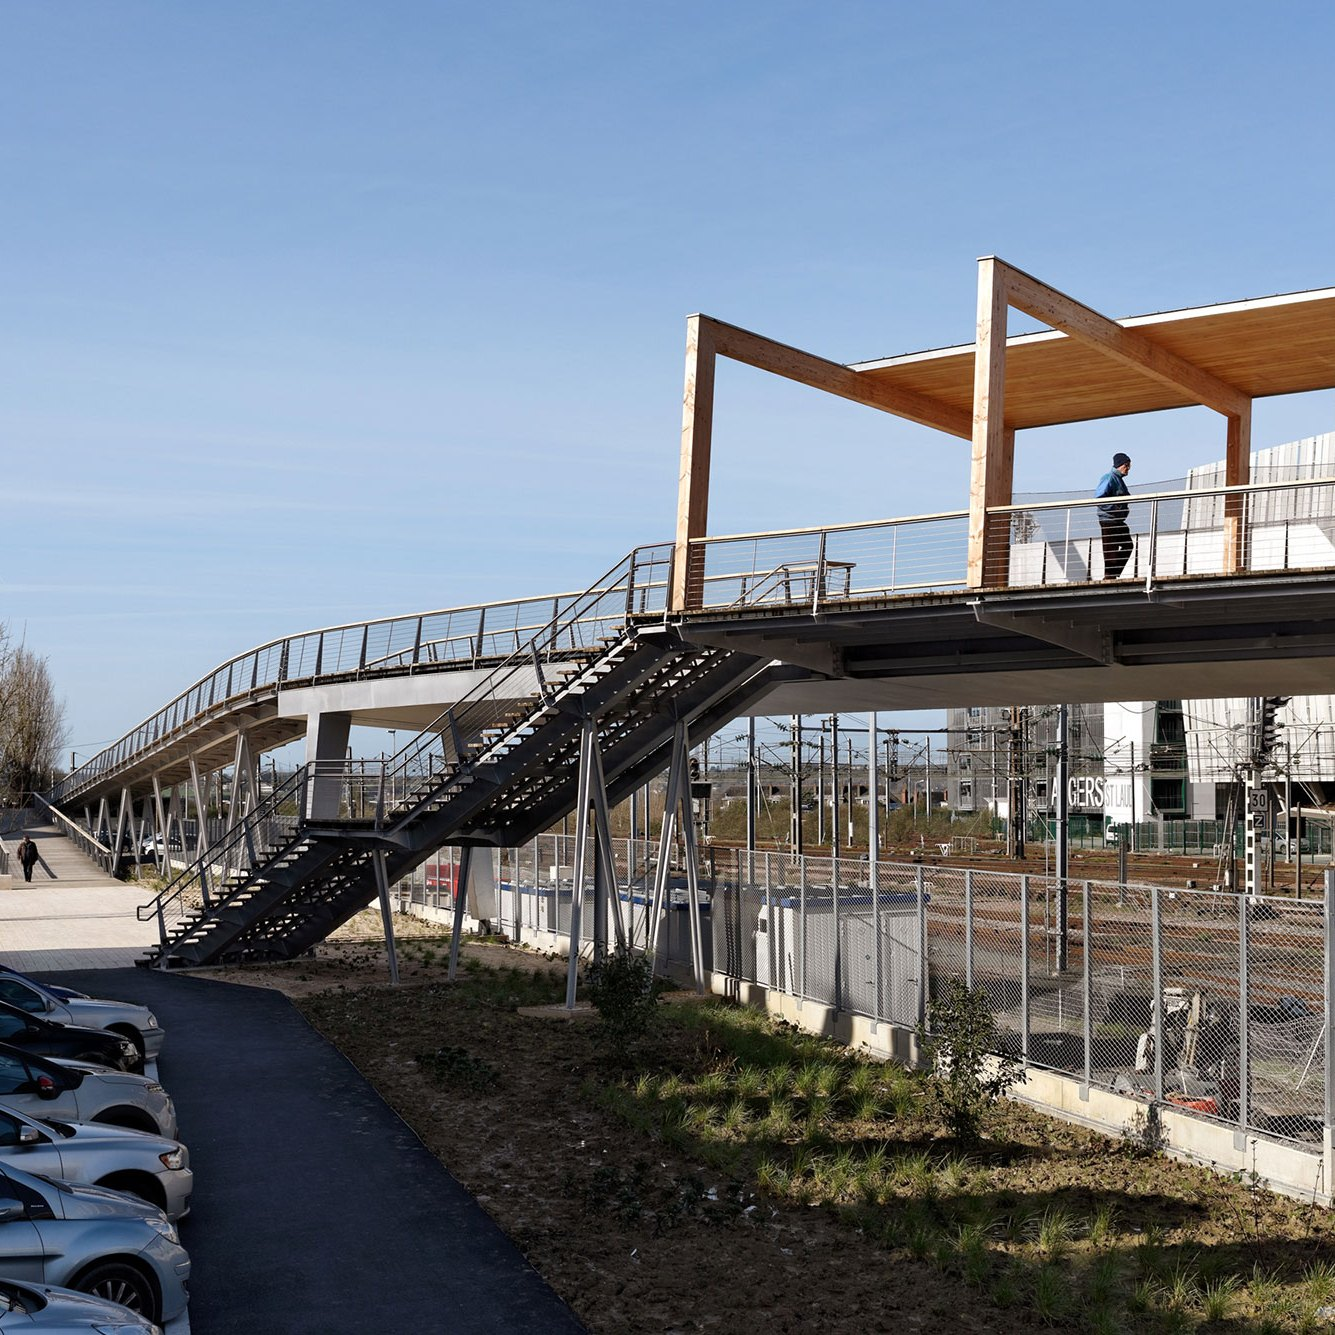 Stairs - Footbridge at Angers Saint-Laud TGV Train Station / Dietmar Feichtinger Architectes (DFA)